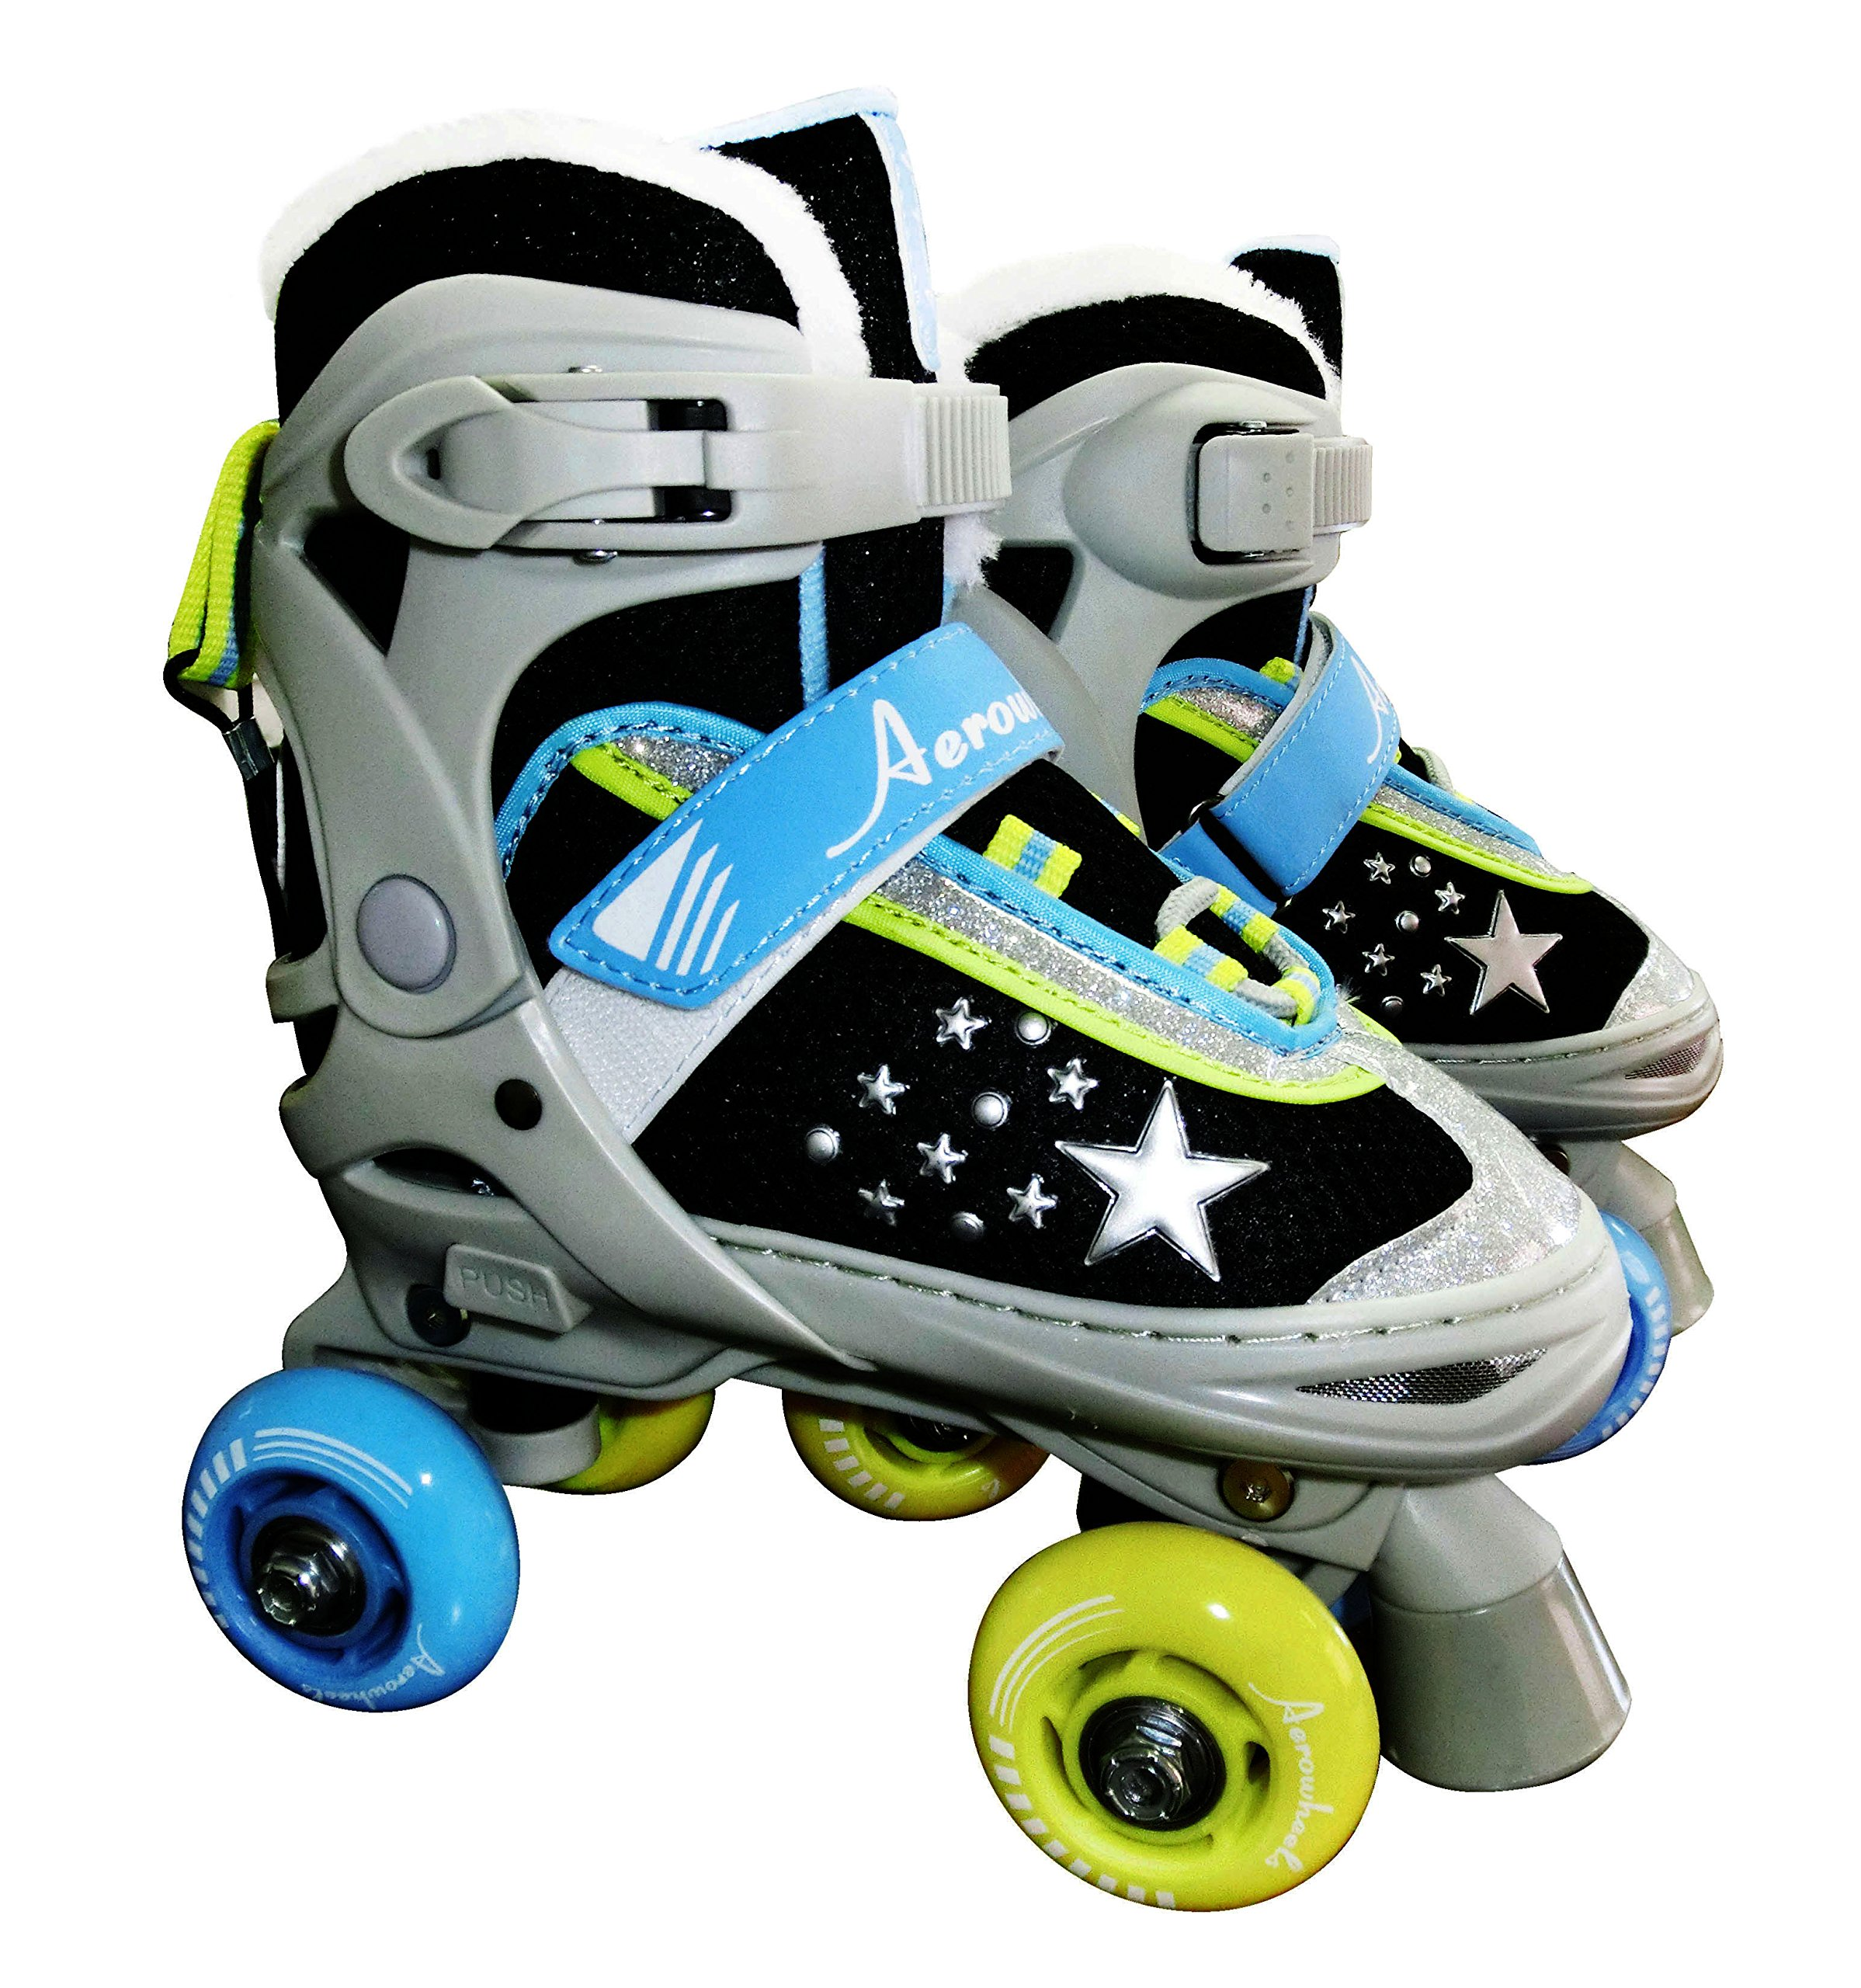 JNJ Aerowheels Roller Skates for Boys and Girls Adjustable Quad Skates